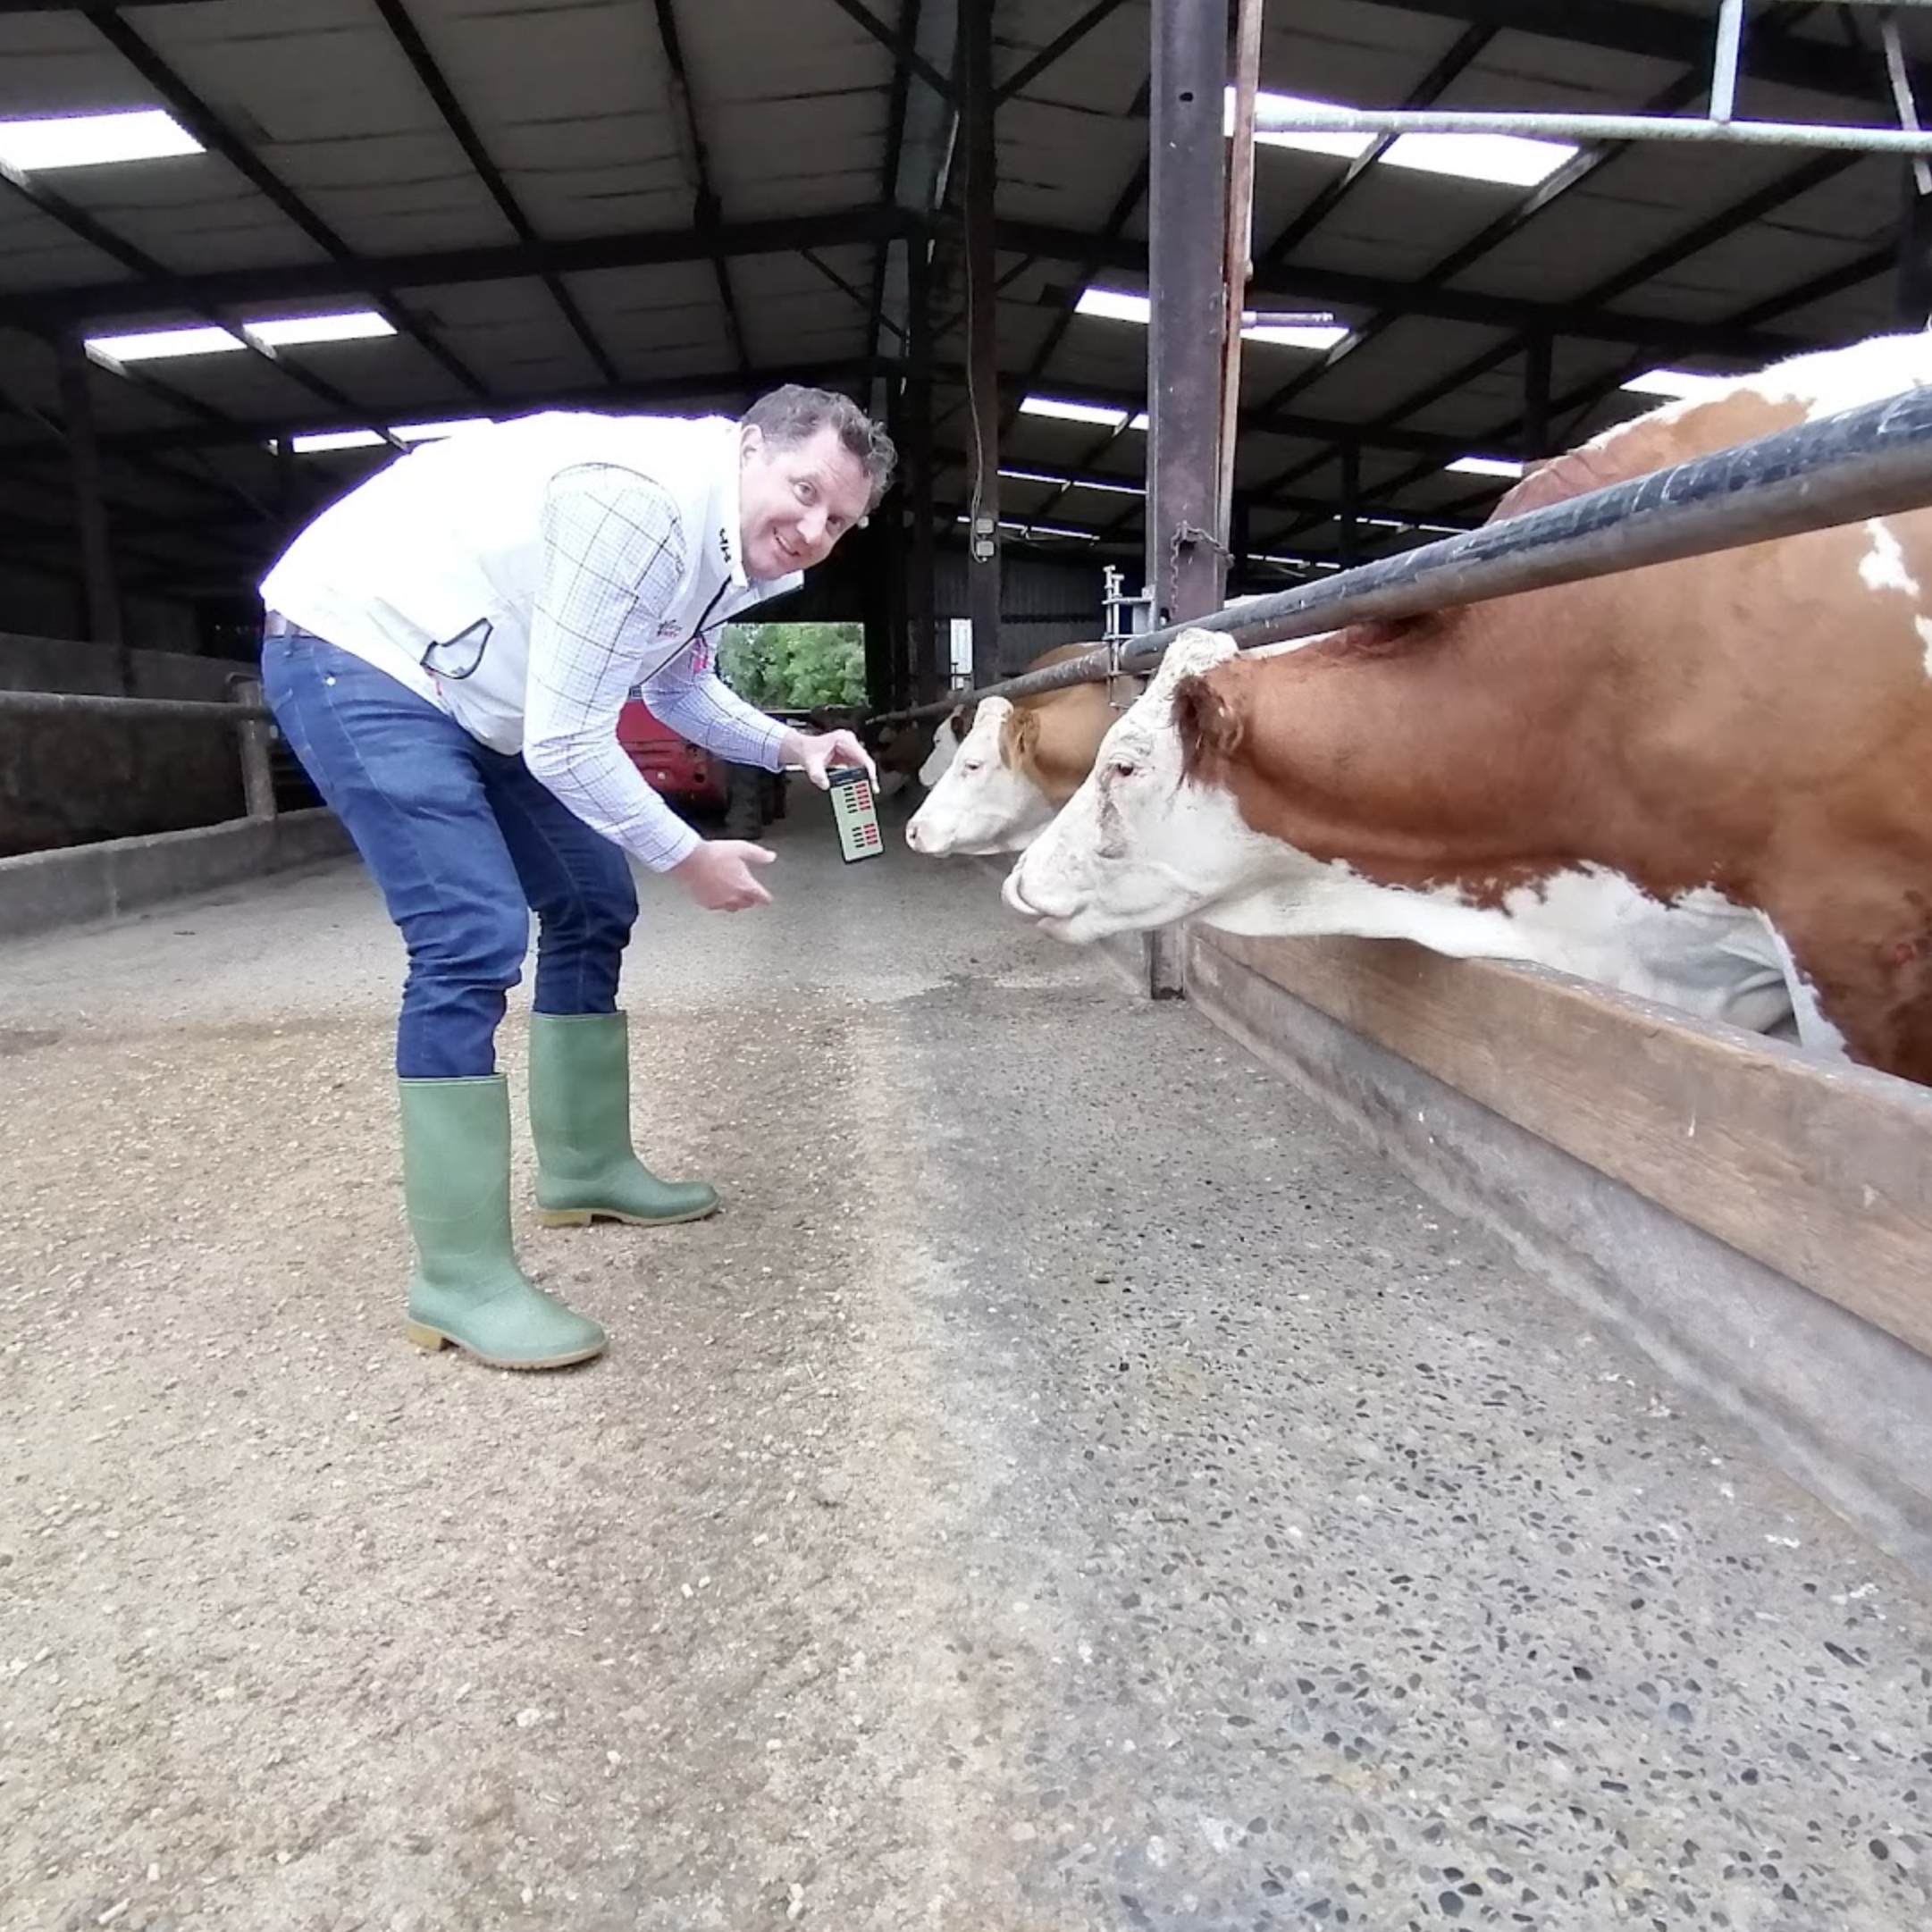 Diarmaid showing a cow the new Concept Dairy app